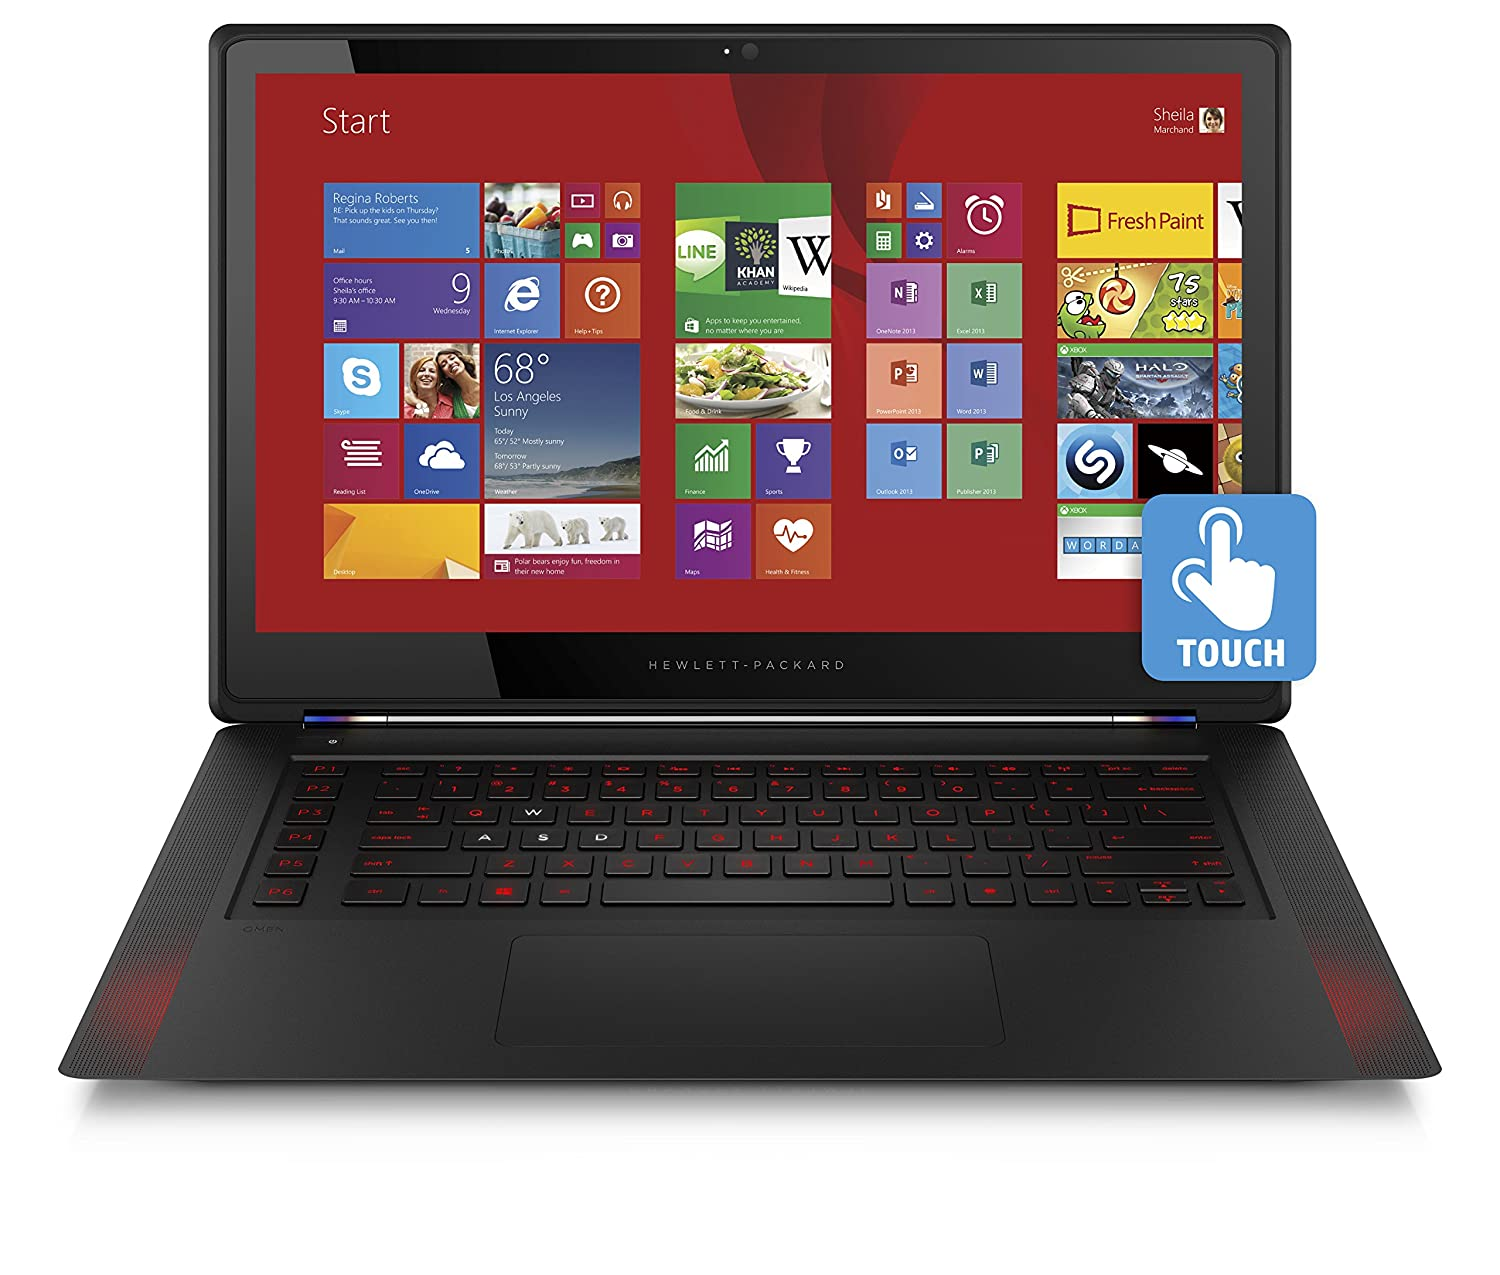 Hp Omen 156 Inch Touchscreen Gaming Laptop Intel Core Dell Alienware M15x Power Button Circuit Board With Cable W 1 Year I7 8 Gb 256 Ssd Black Nvidia Geforce Gtx 960m Computers Accessories